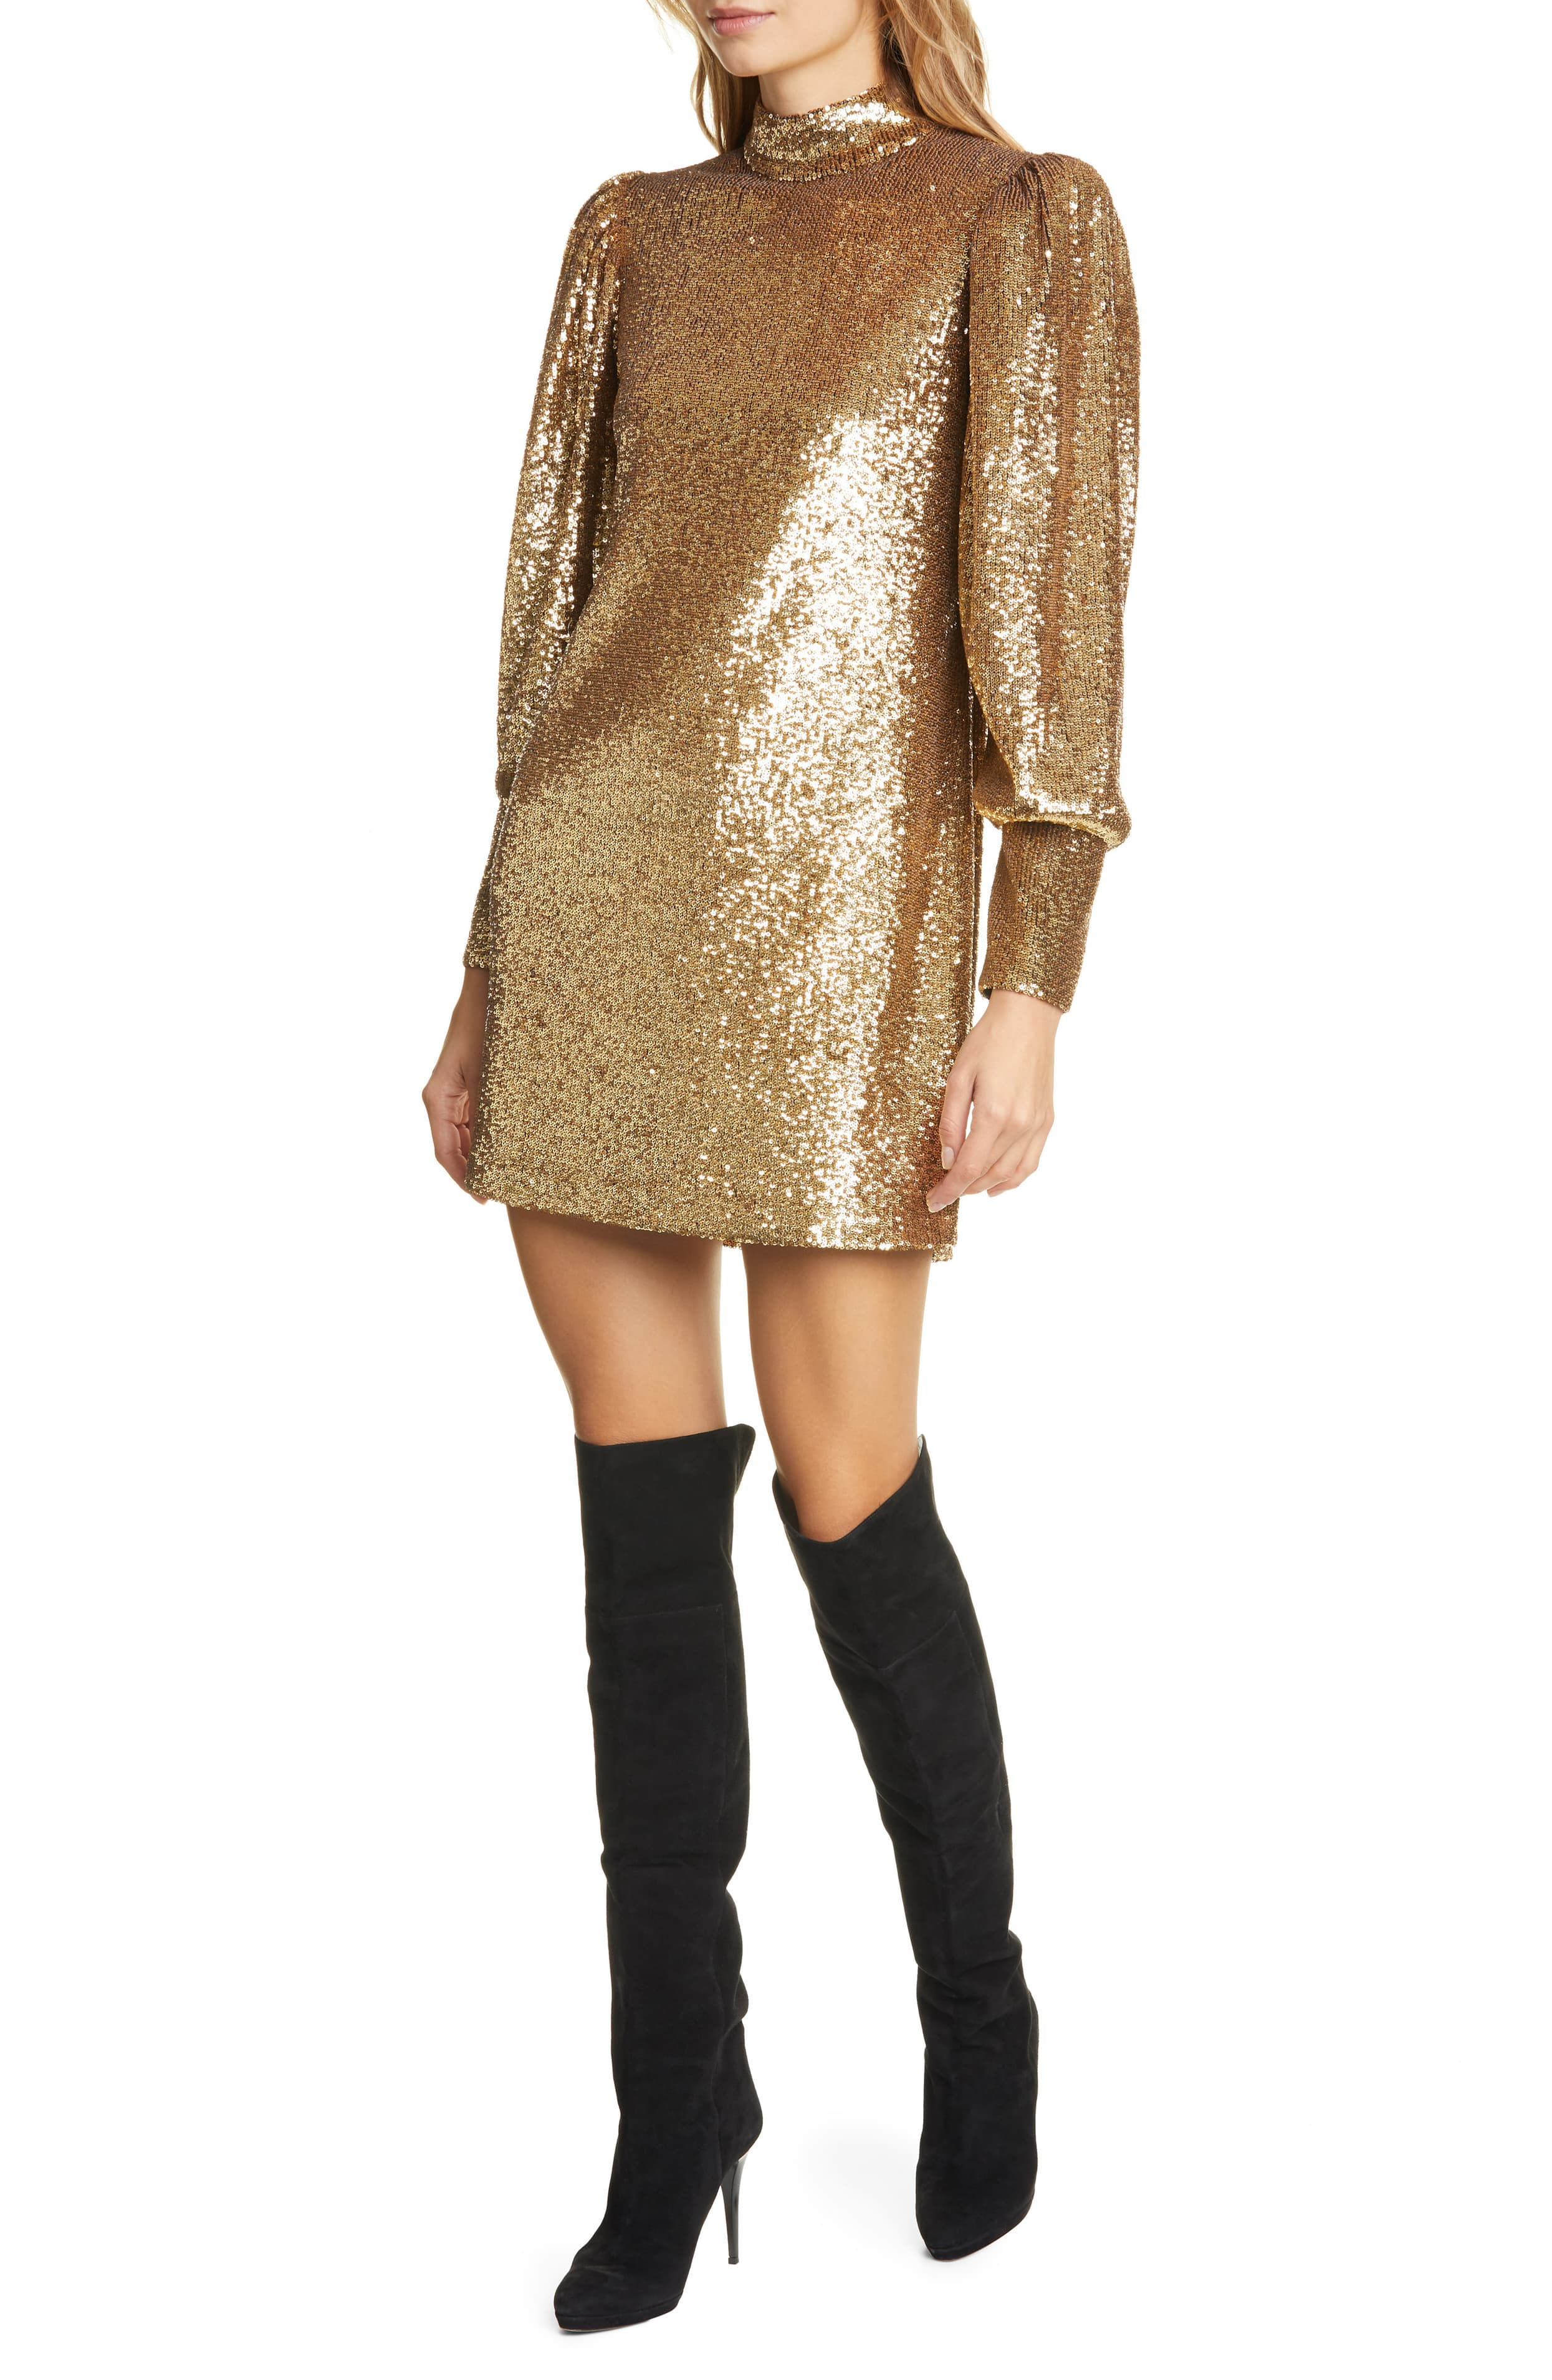 "<p>Glossy sequins deliver liquid shine on this glamorous balloon-sleeve shift inspired by the designer's past career in celebrity red-carpet styling. $595{&nbsp;}</p><p><a  href=""https://shop.nordstrom.com/s/a-l-c-christy-sequin-long-sleeve-minidress/5418569/full?origin=category-personalizedsort&breadcrumb=Home%2FWomen%2FShop%20by%20Occasion%2FNight%20Out&color=black"" target=""_blank"" title=""https://shop.nordstrom.com/s/a-l-c-christy-sequin-long-sleeve-minidress/5418569/full?origin=category-personalizedsort&breadcrumb=Home%2FWomen%2FShop%20by%20Occasion%2FNight%20Out&color=black"">Shop it{&nbsp;}</a></p><p>(Image: Nordstrom){&nbsp;}</p><p><br></p>"